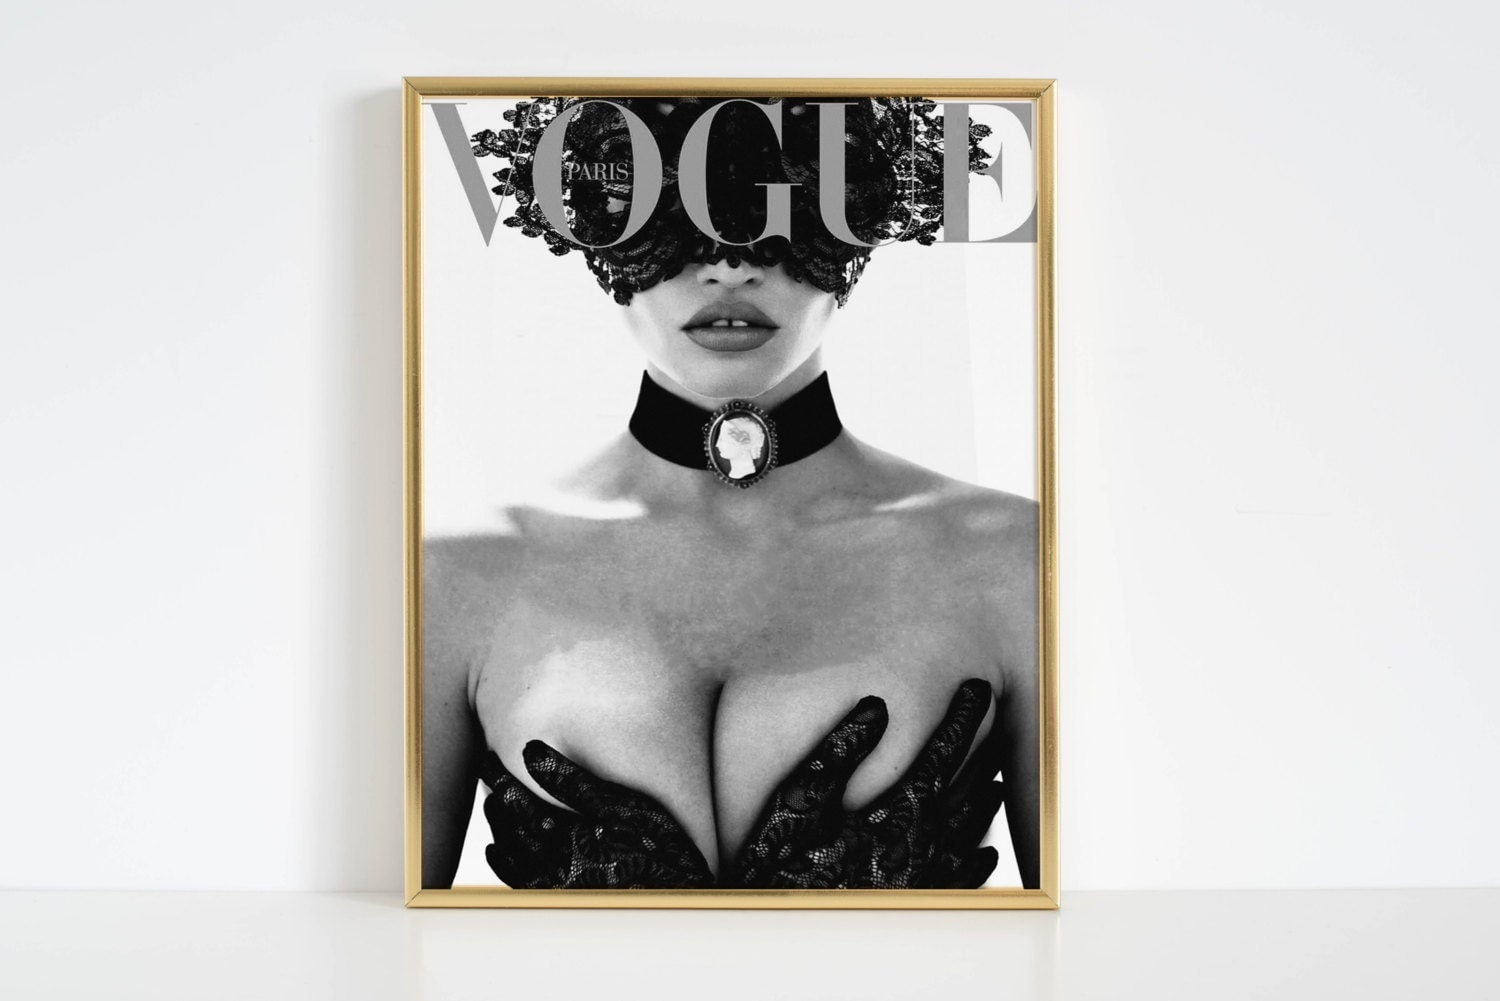 vogue print fashion wall art vogue poster fashion decor vogue cover vogue magazine vogue paris original - Vogue Decor Magazine